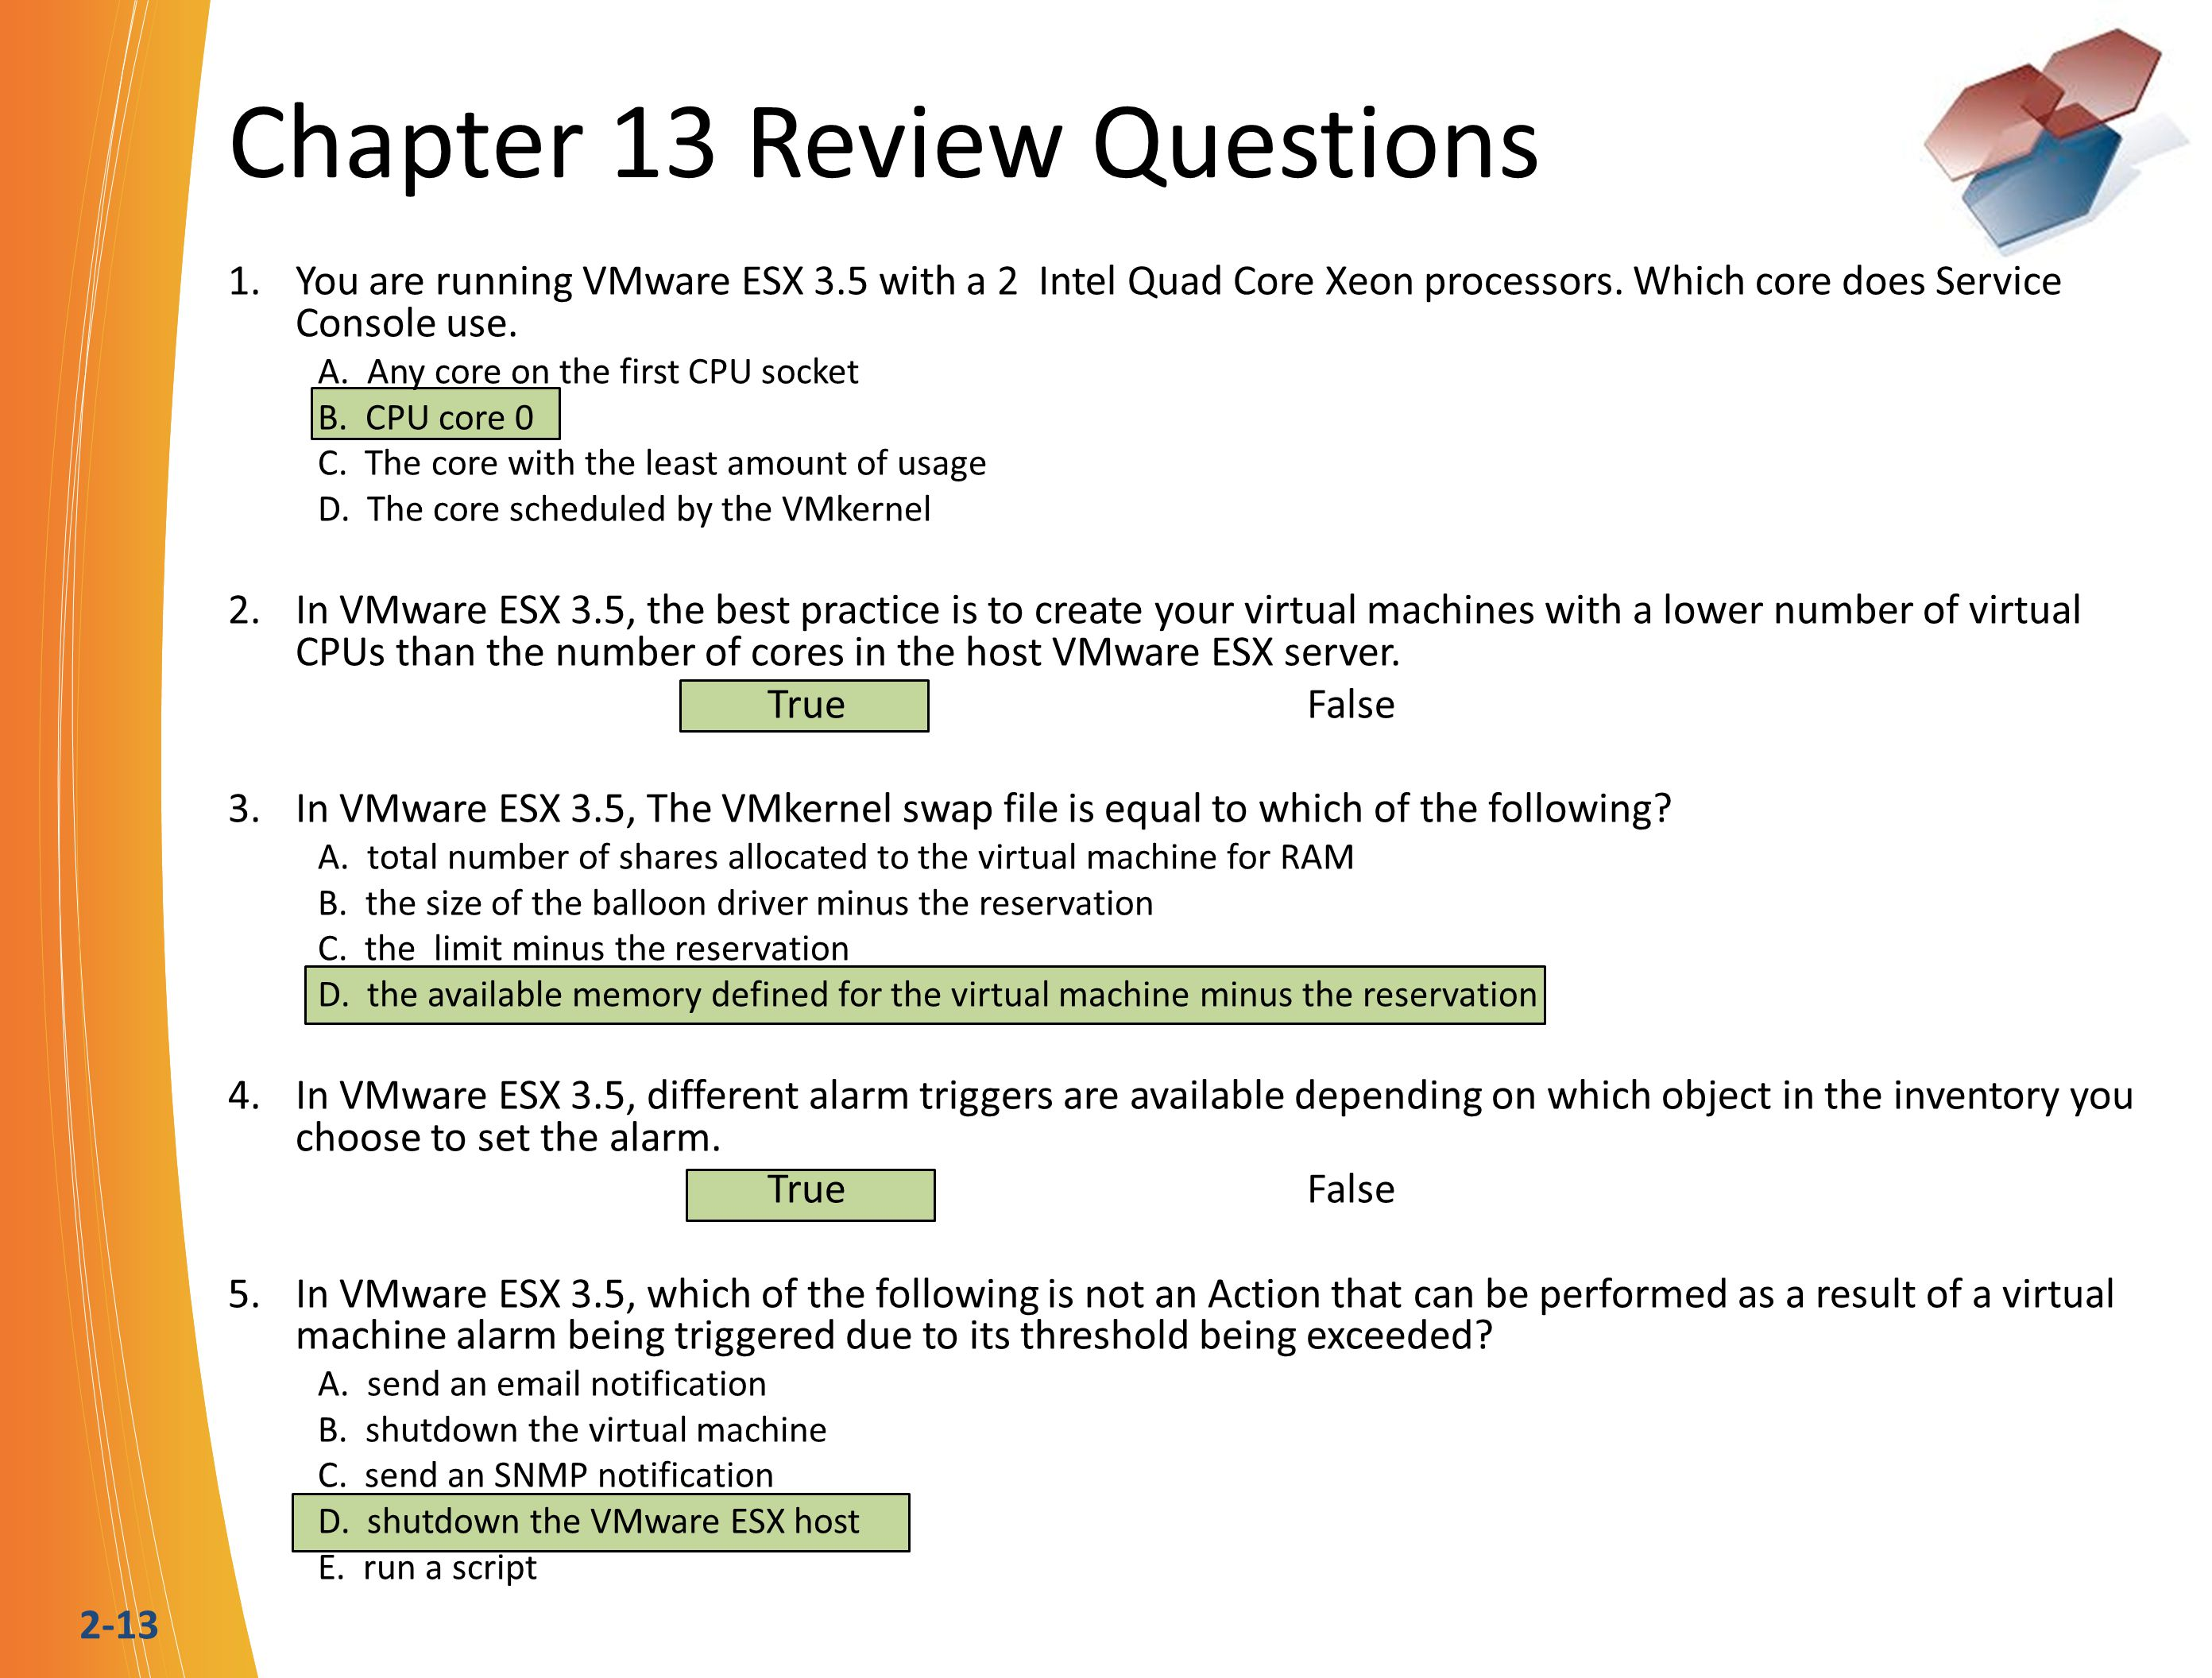 2-13 Chapter 13 Review Questions 1. You are running VMware ESX 3.5 with a 2 Intel Quad Core Xeon processors. Which core does Service Console use. A. A